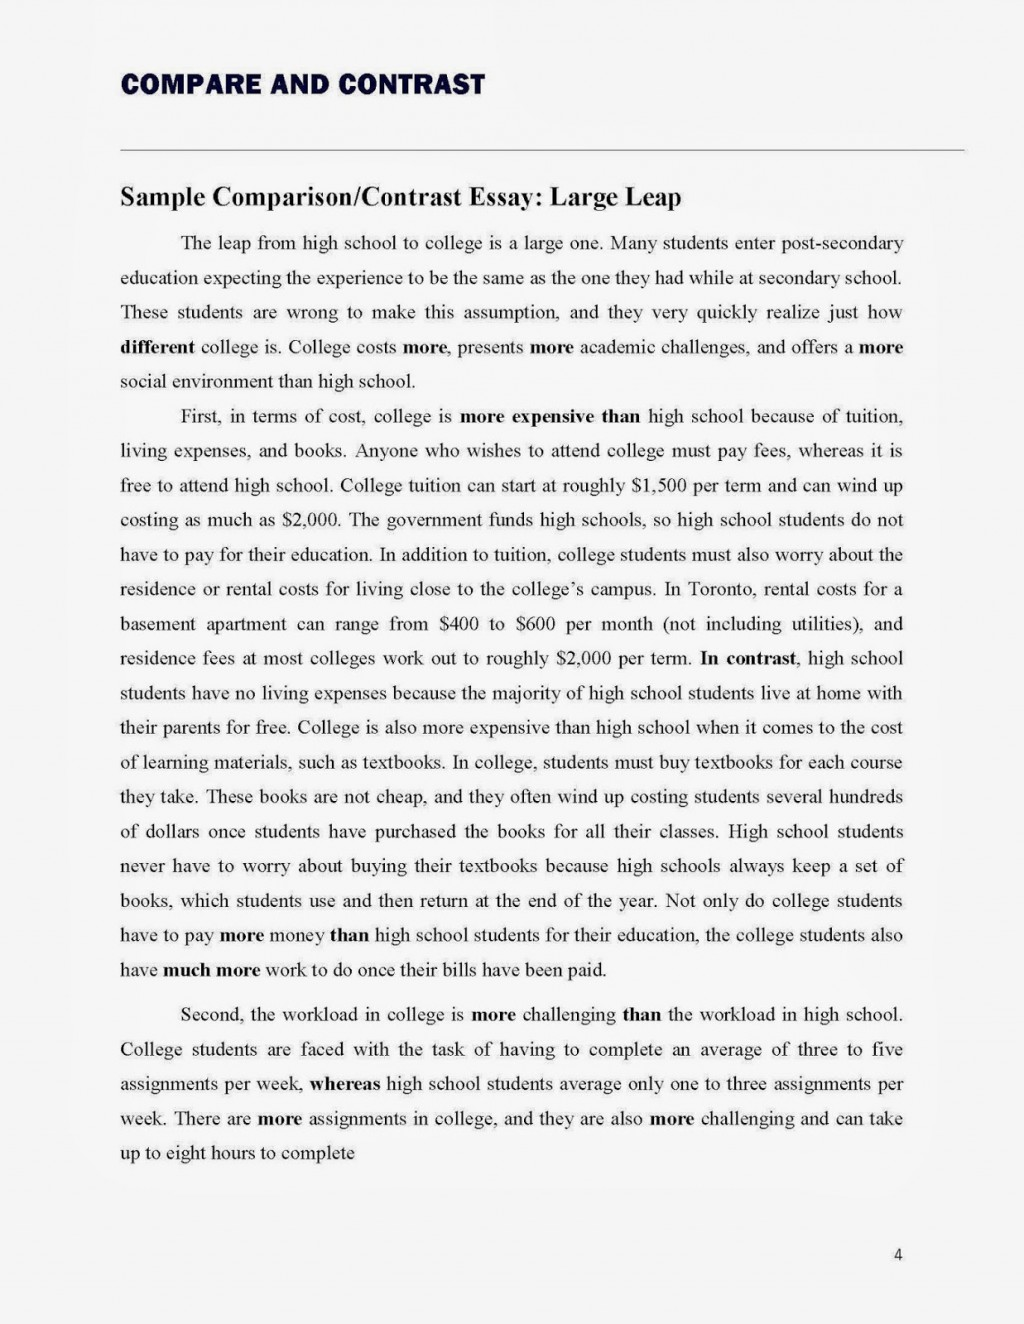 004 Essay Example Compare2band2bcontrast2bessay Page 4 Compare And Contrast Top Intro Introduction Paragraph Sample Large